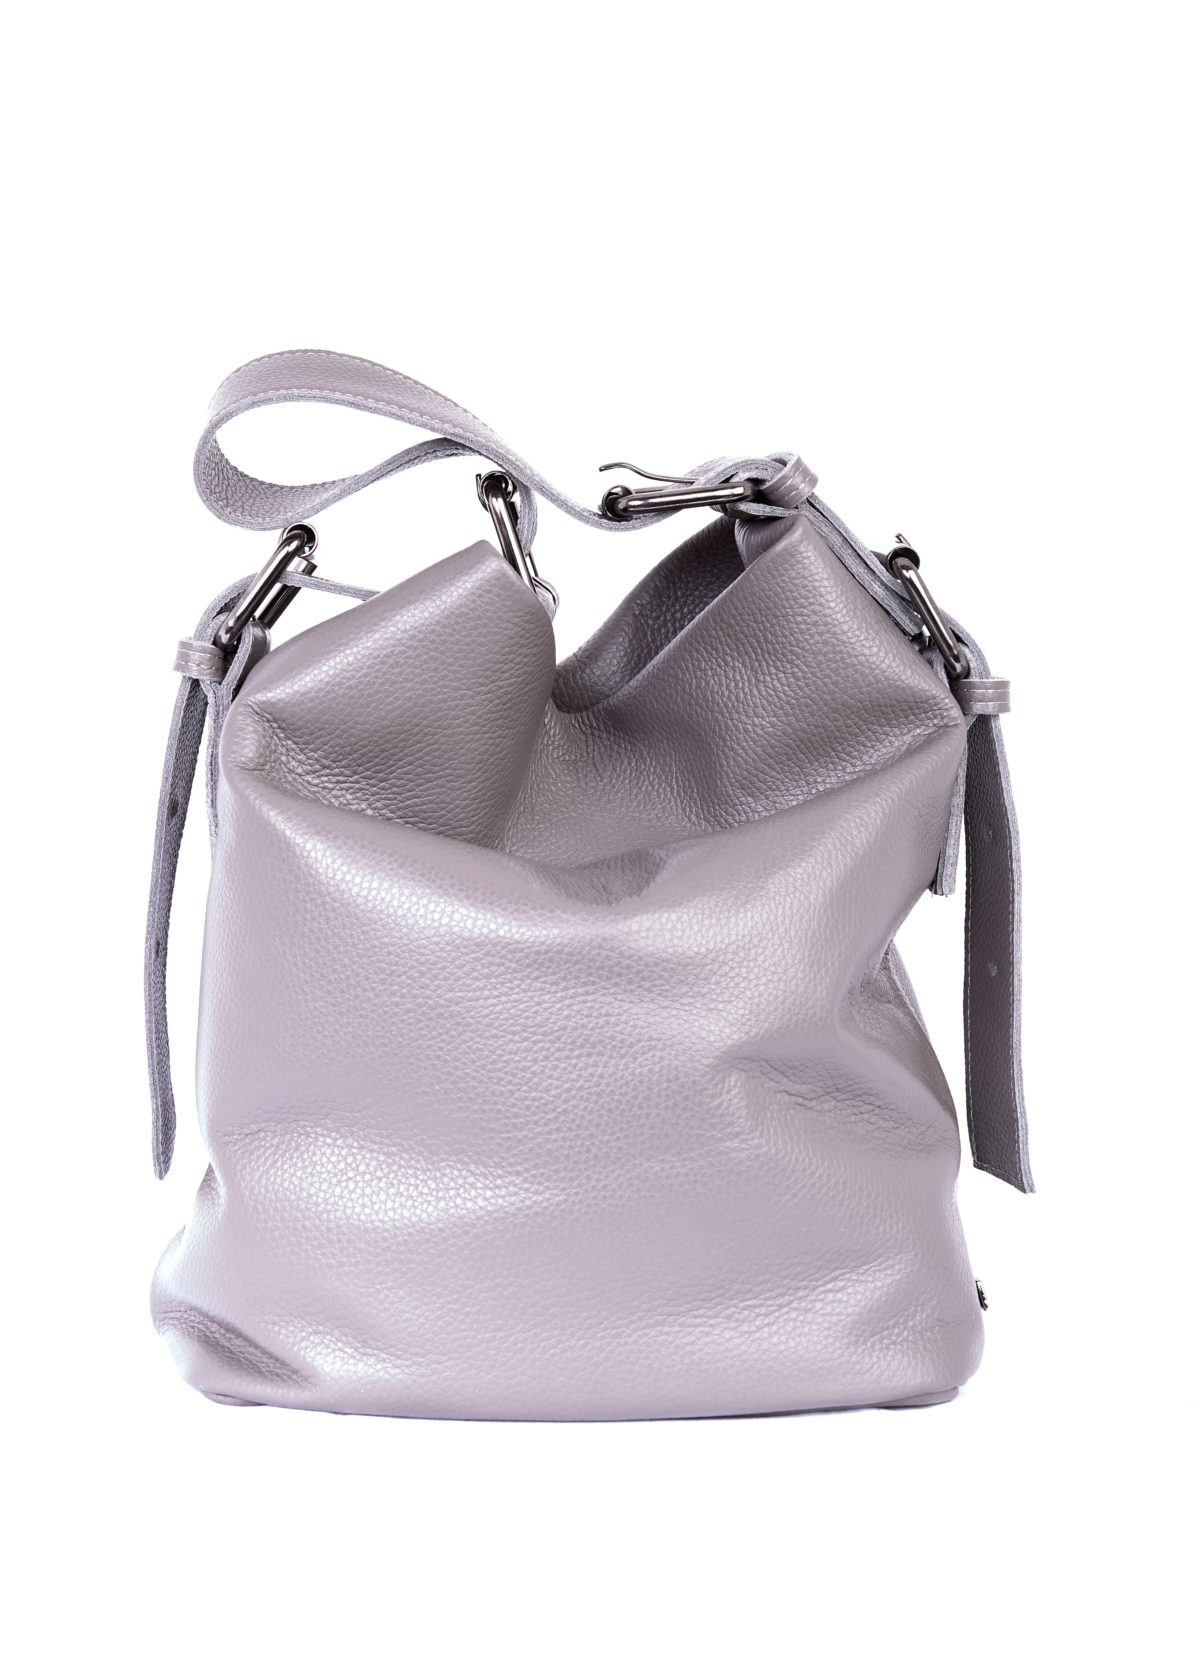 Day to Evening Pouch Bag L Grey | Elena Athanasiou Bags | Not The Ordinary FW21 Collection